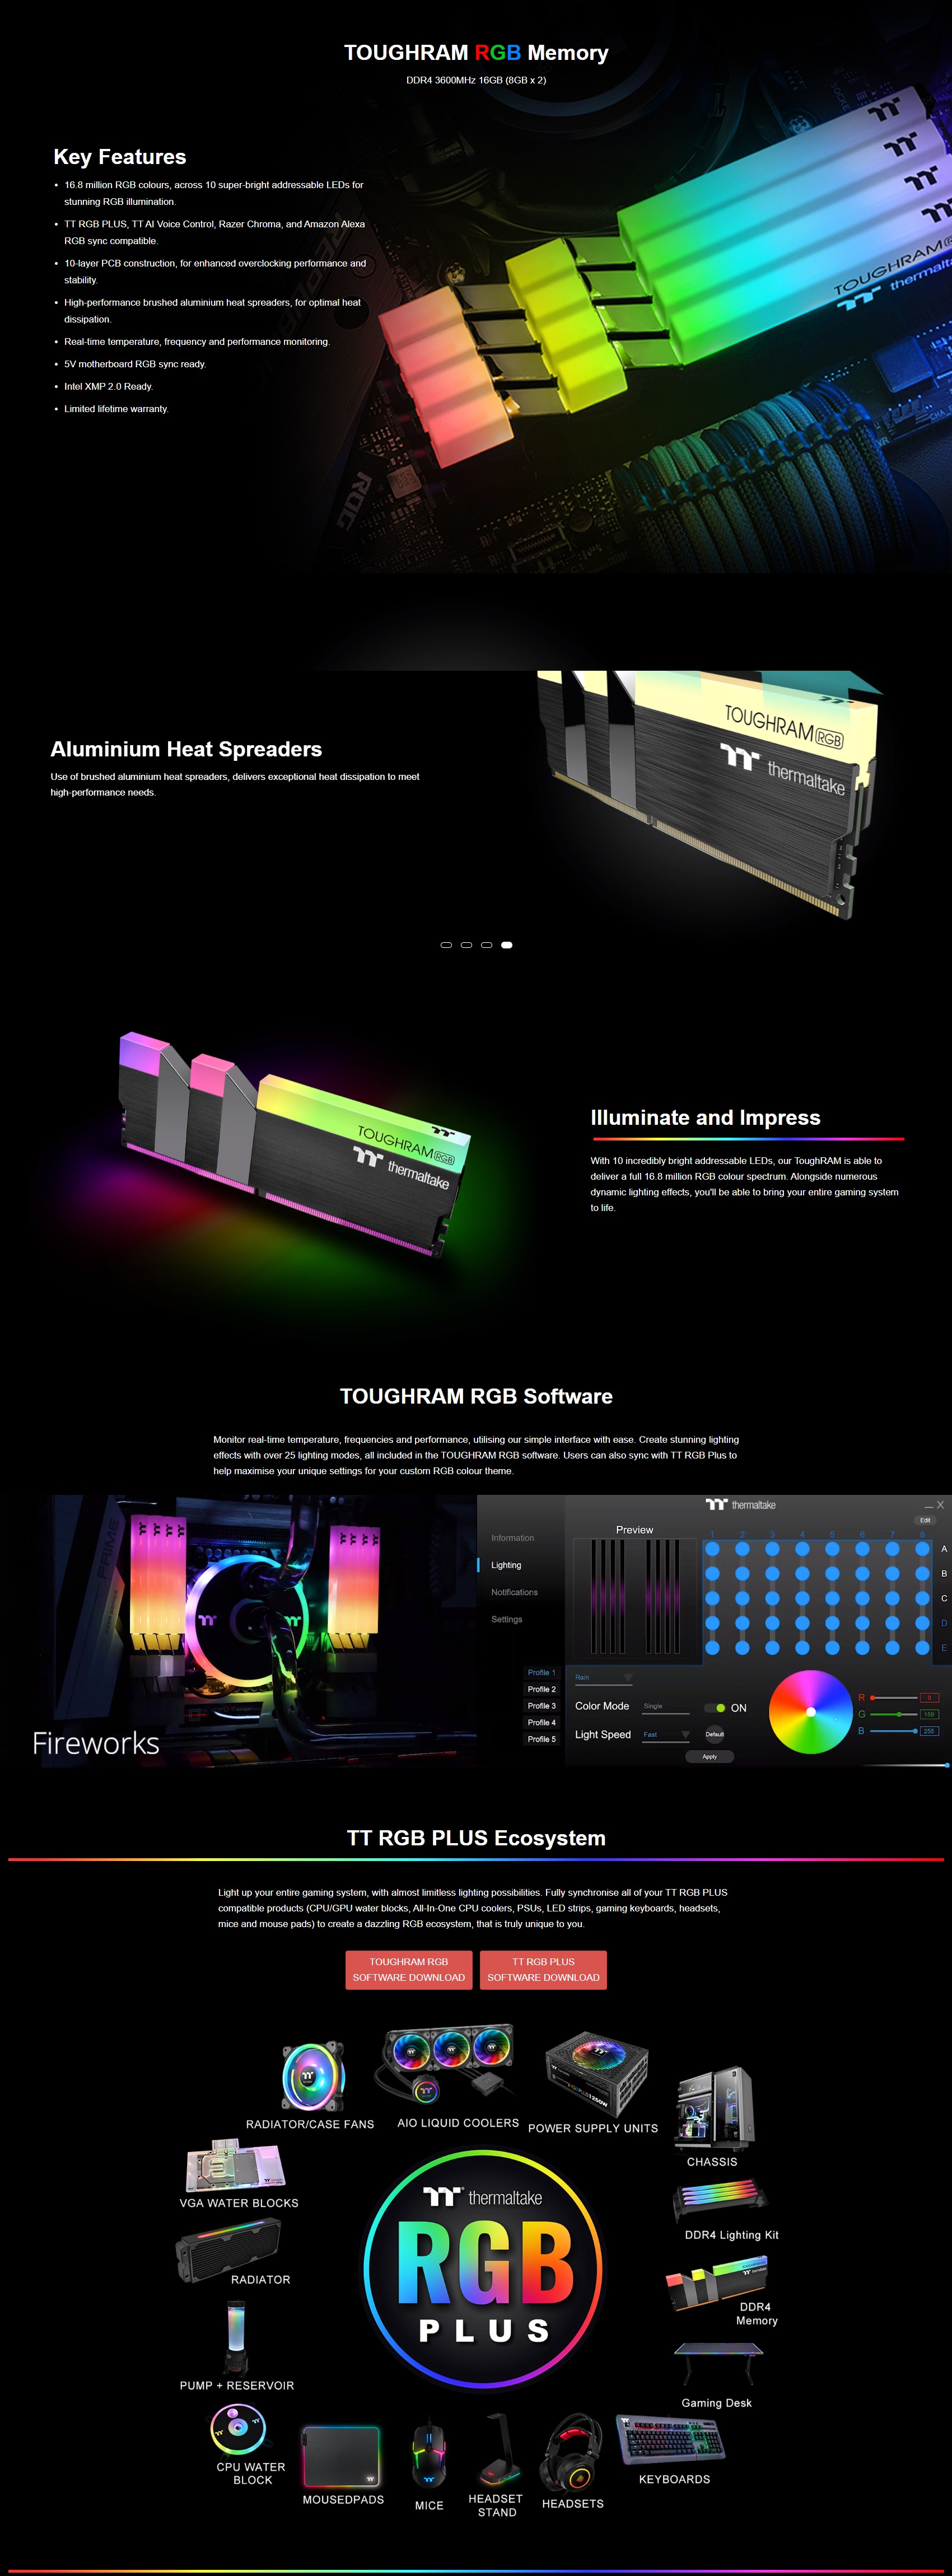 A large marketing image providing additional information about the product Thermaltake 16GB (2x8GB) ToughRAM RGB C19 4400MHz - Additional alt info not provided